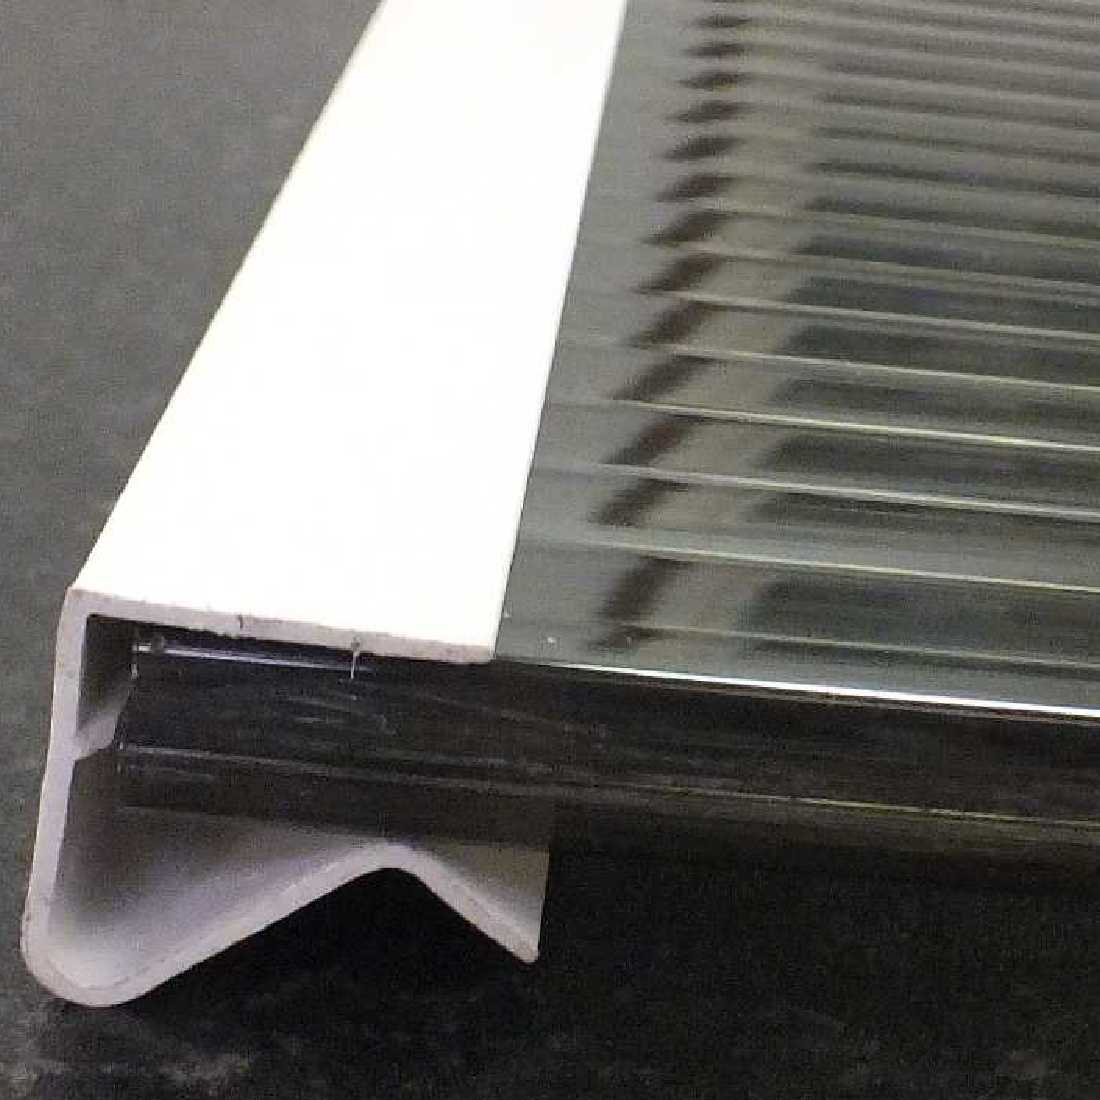 uPVC Sheet Closures for 10mm thick glazing, 2.1m